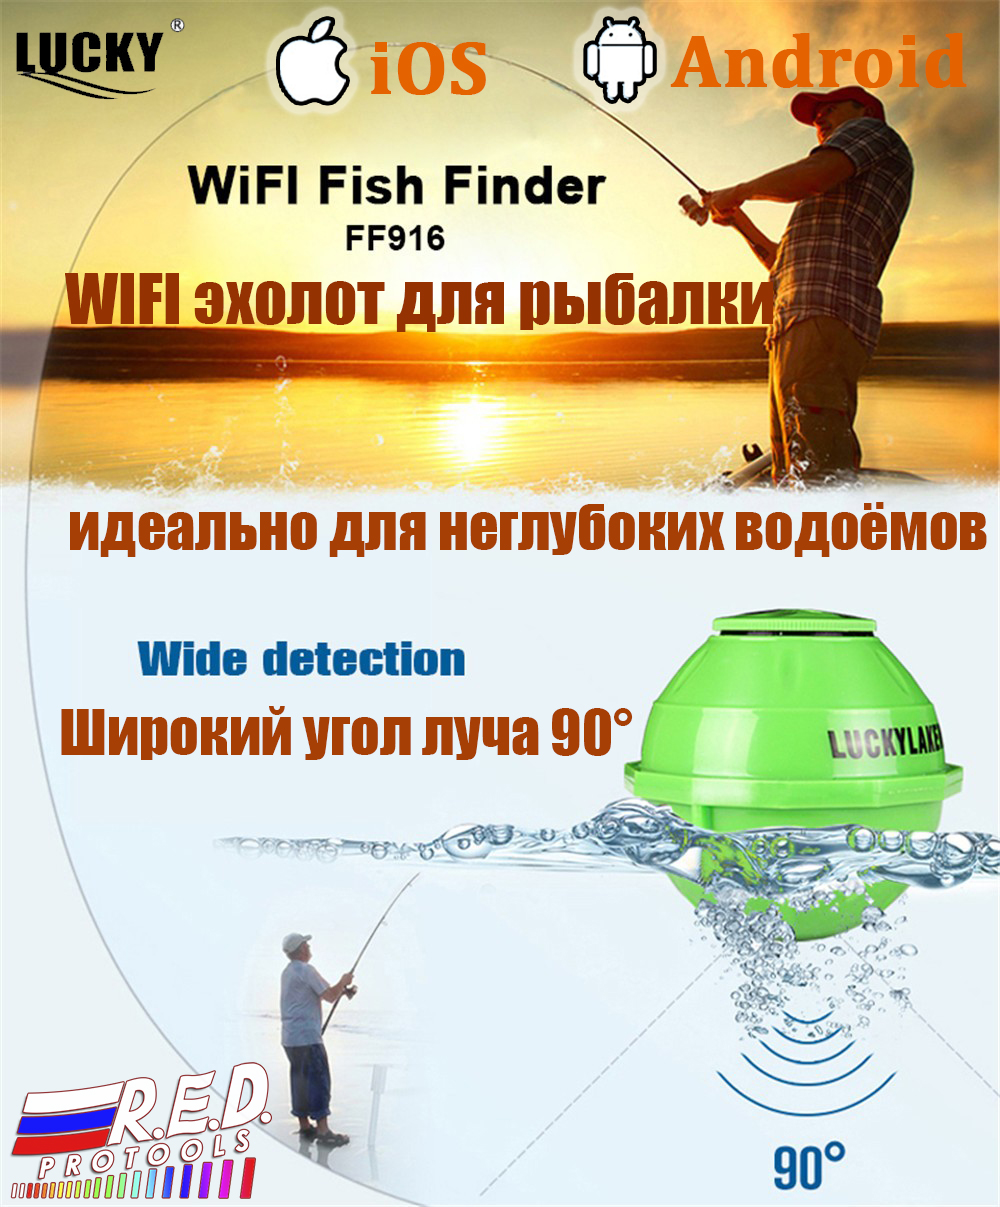 LUCKY FF916 EXT WiFi fish finder Wireless WI-FI Fish Finder 100 M Depth Range 45 m Rechargeable Android iOS with Wifi Extender